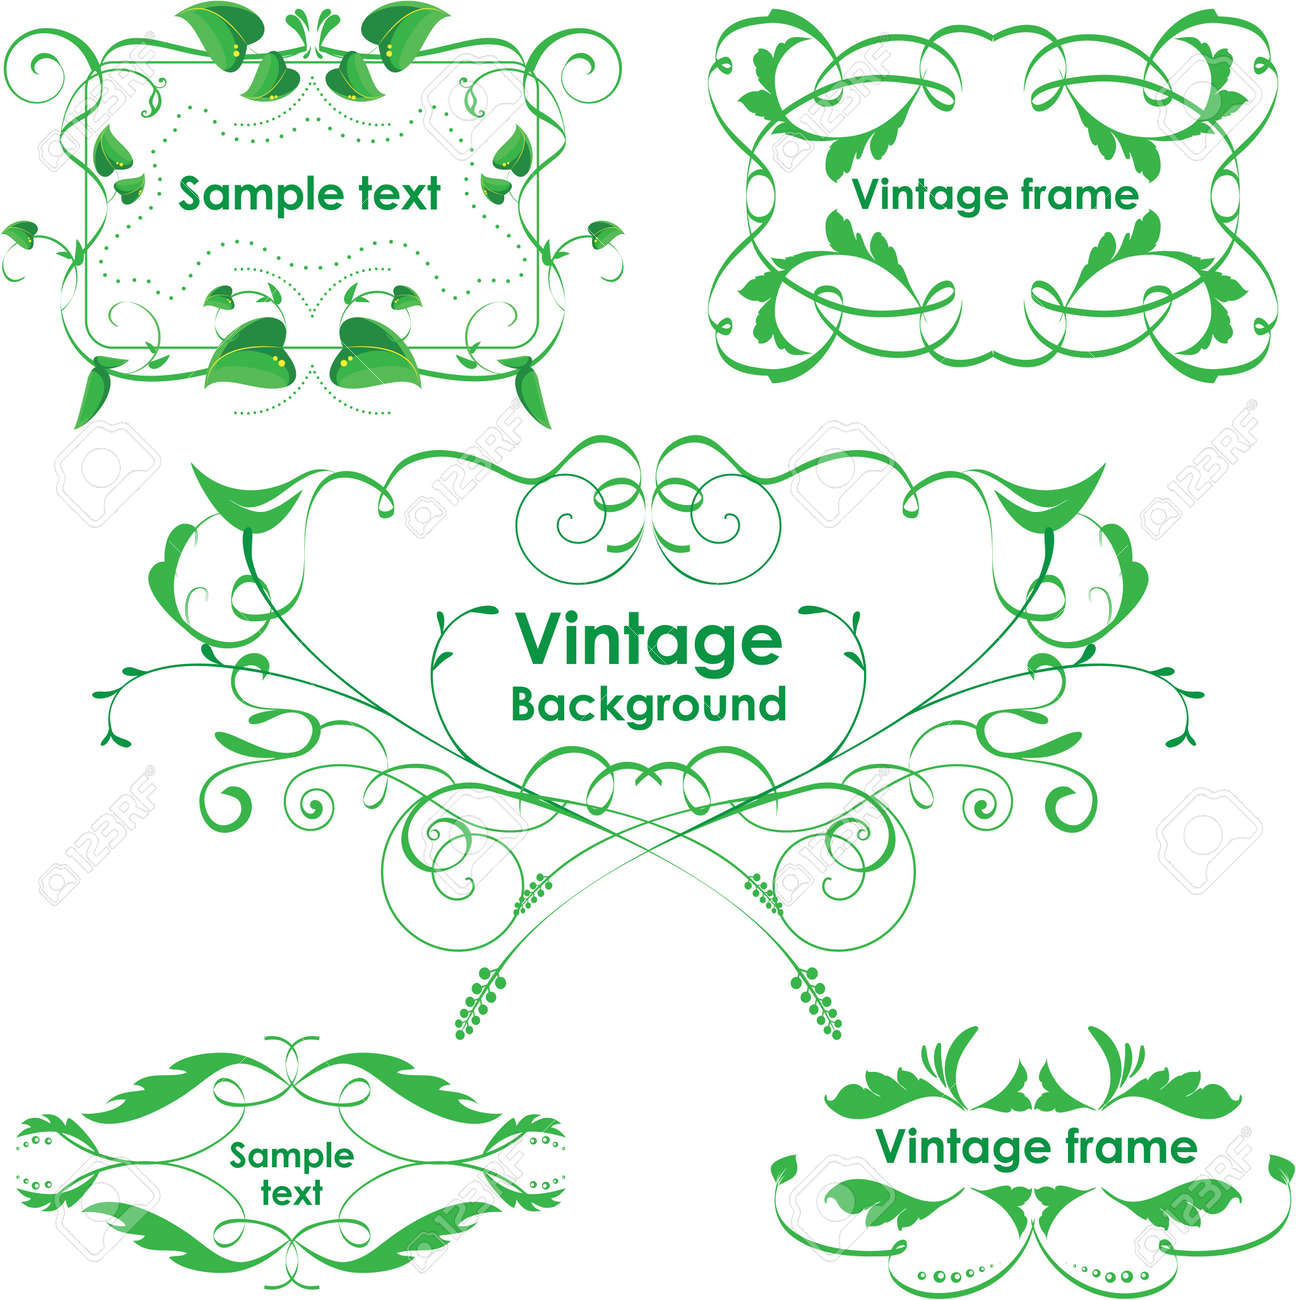 Vintage frames. Vector design elements. Eco green Stock Vector - 13582599